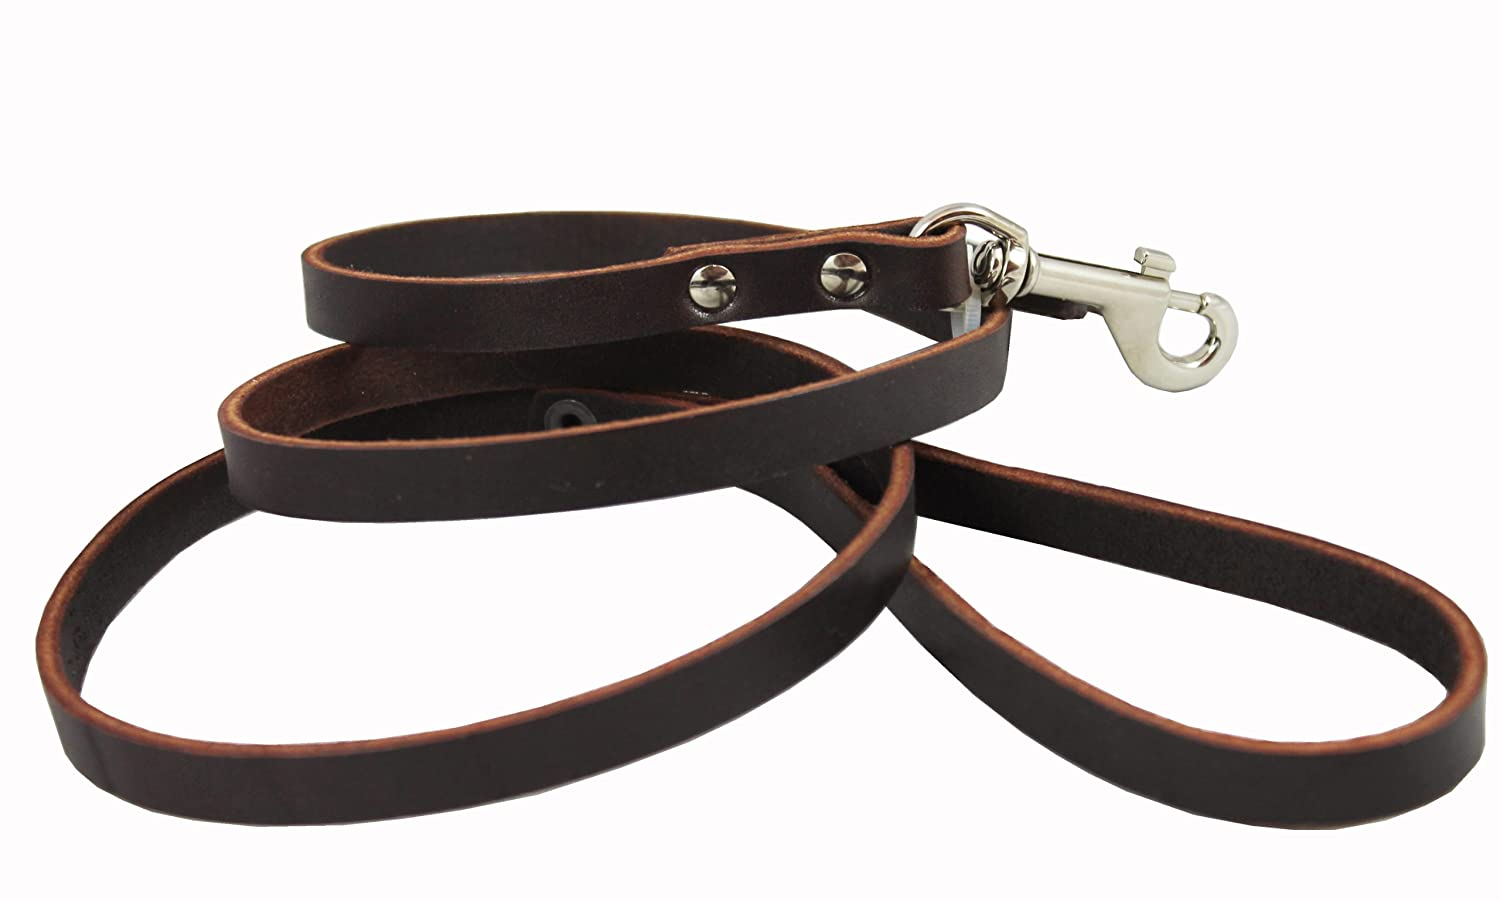 Genuine Leather Leather Leather Classic Dog Leash Marronee 1 2 Wide 4 Ft Basset Hound, Collie, Shar-Pei by Dogs My Love ab5aff